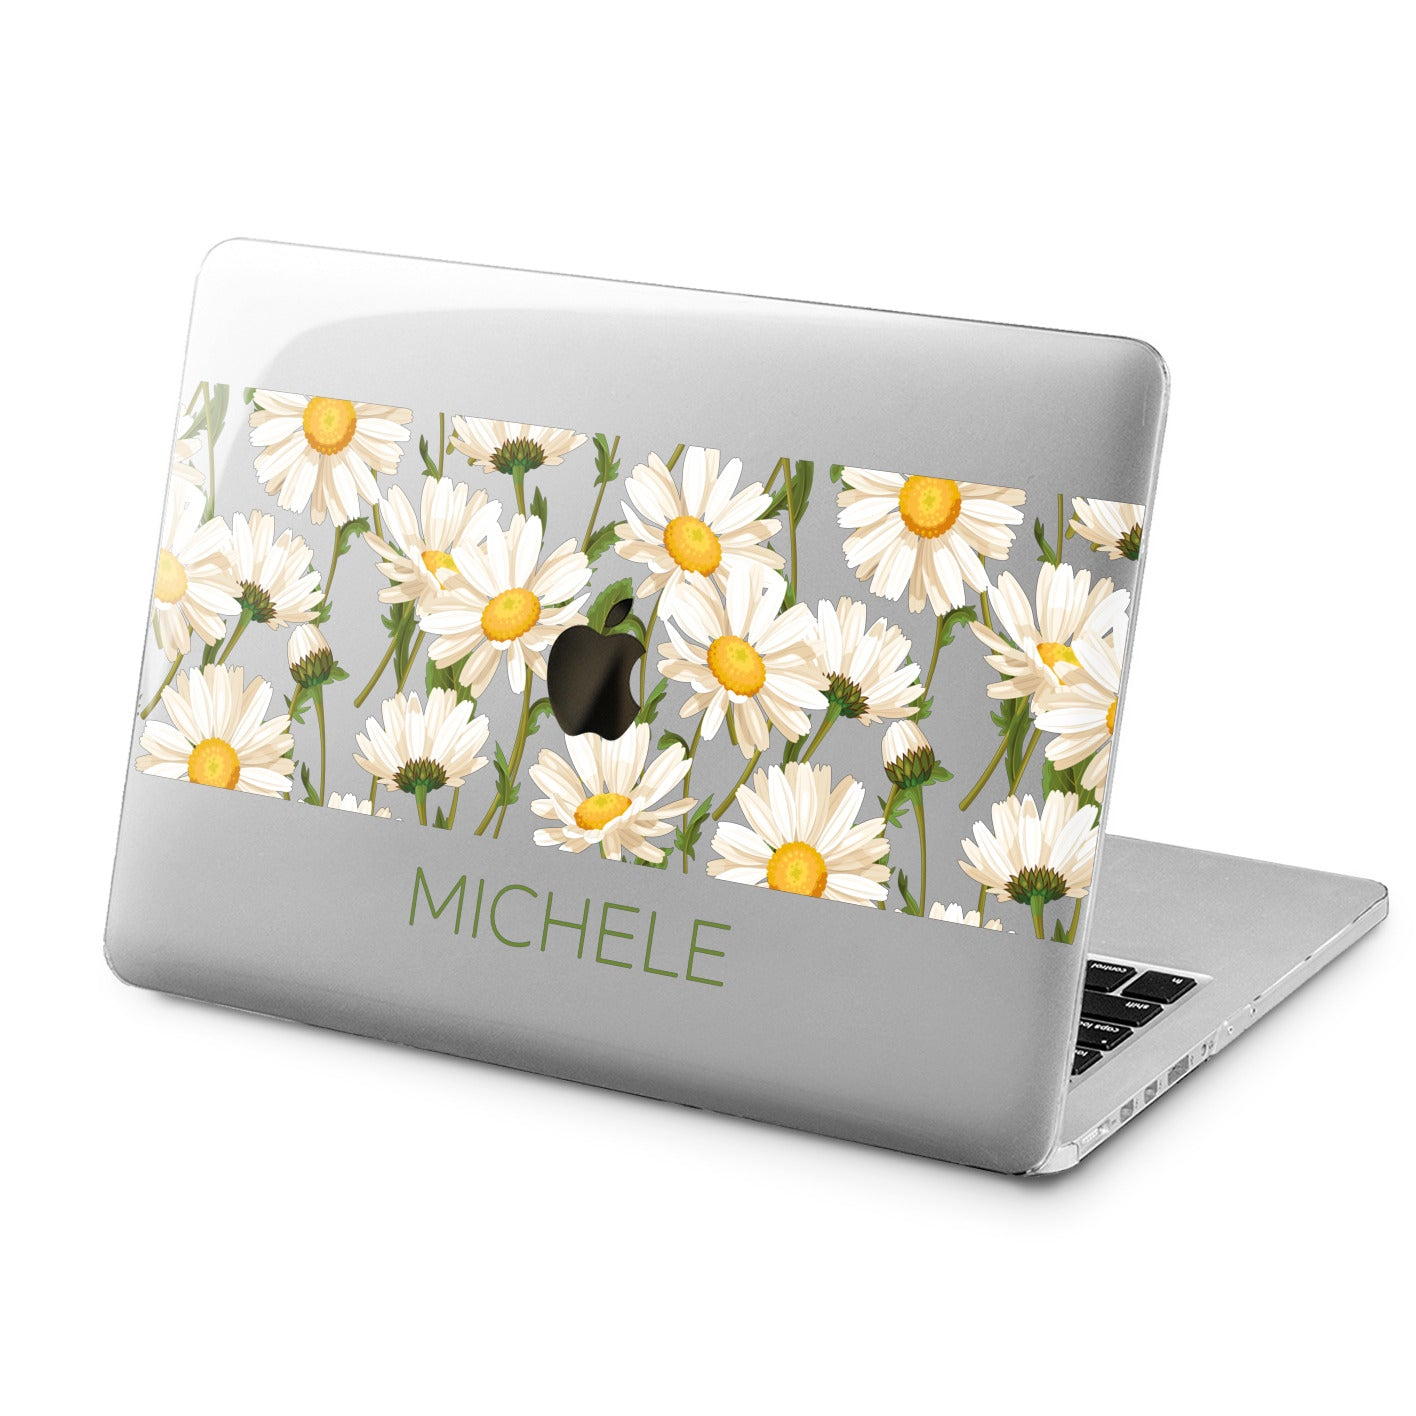 Lex Altern Lex Altern Daisy Flowers Case for your Laptop Apple Macbook.